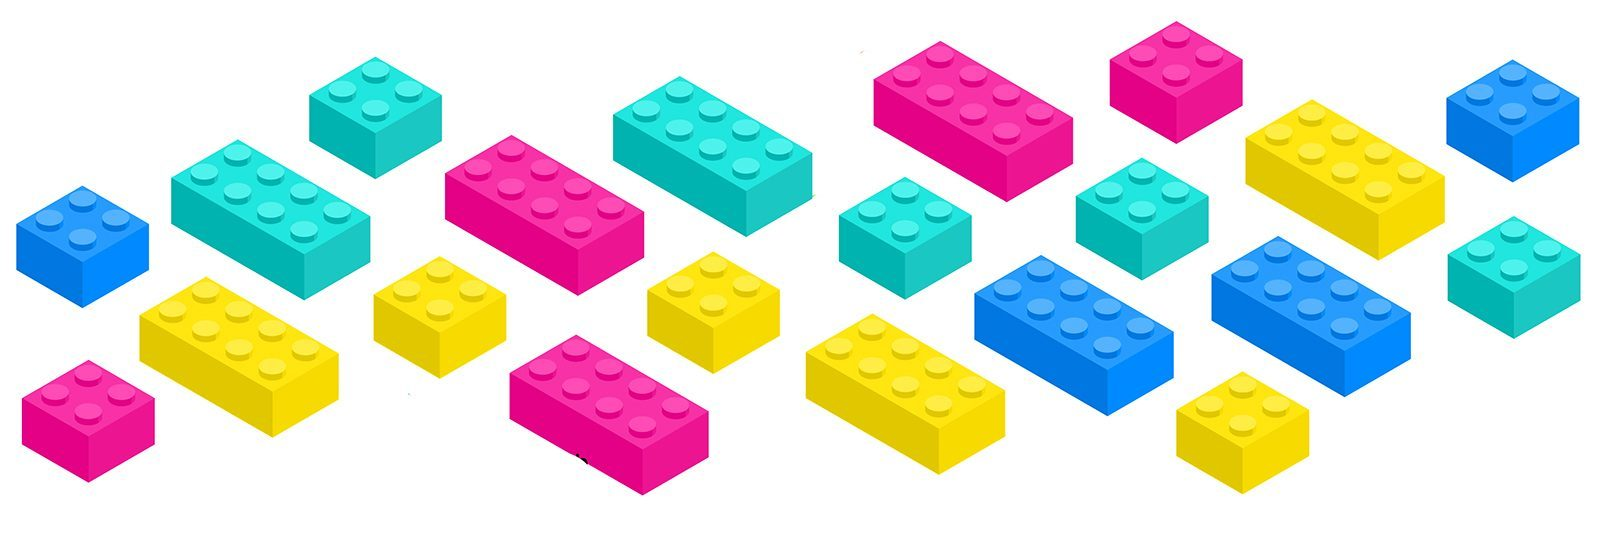 Clear blocks + limiting beliefs showing lego blocks in colour